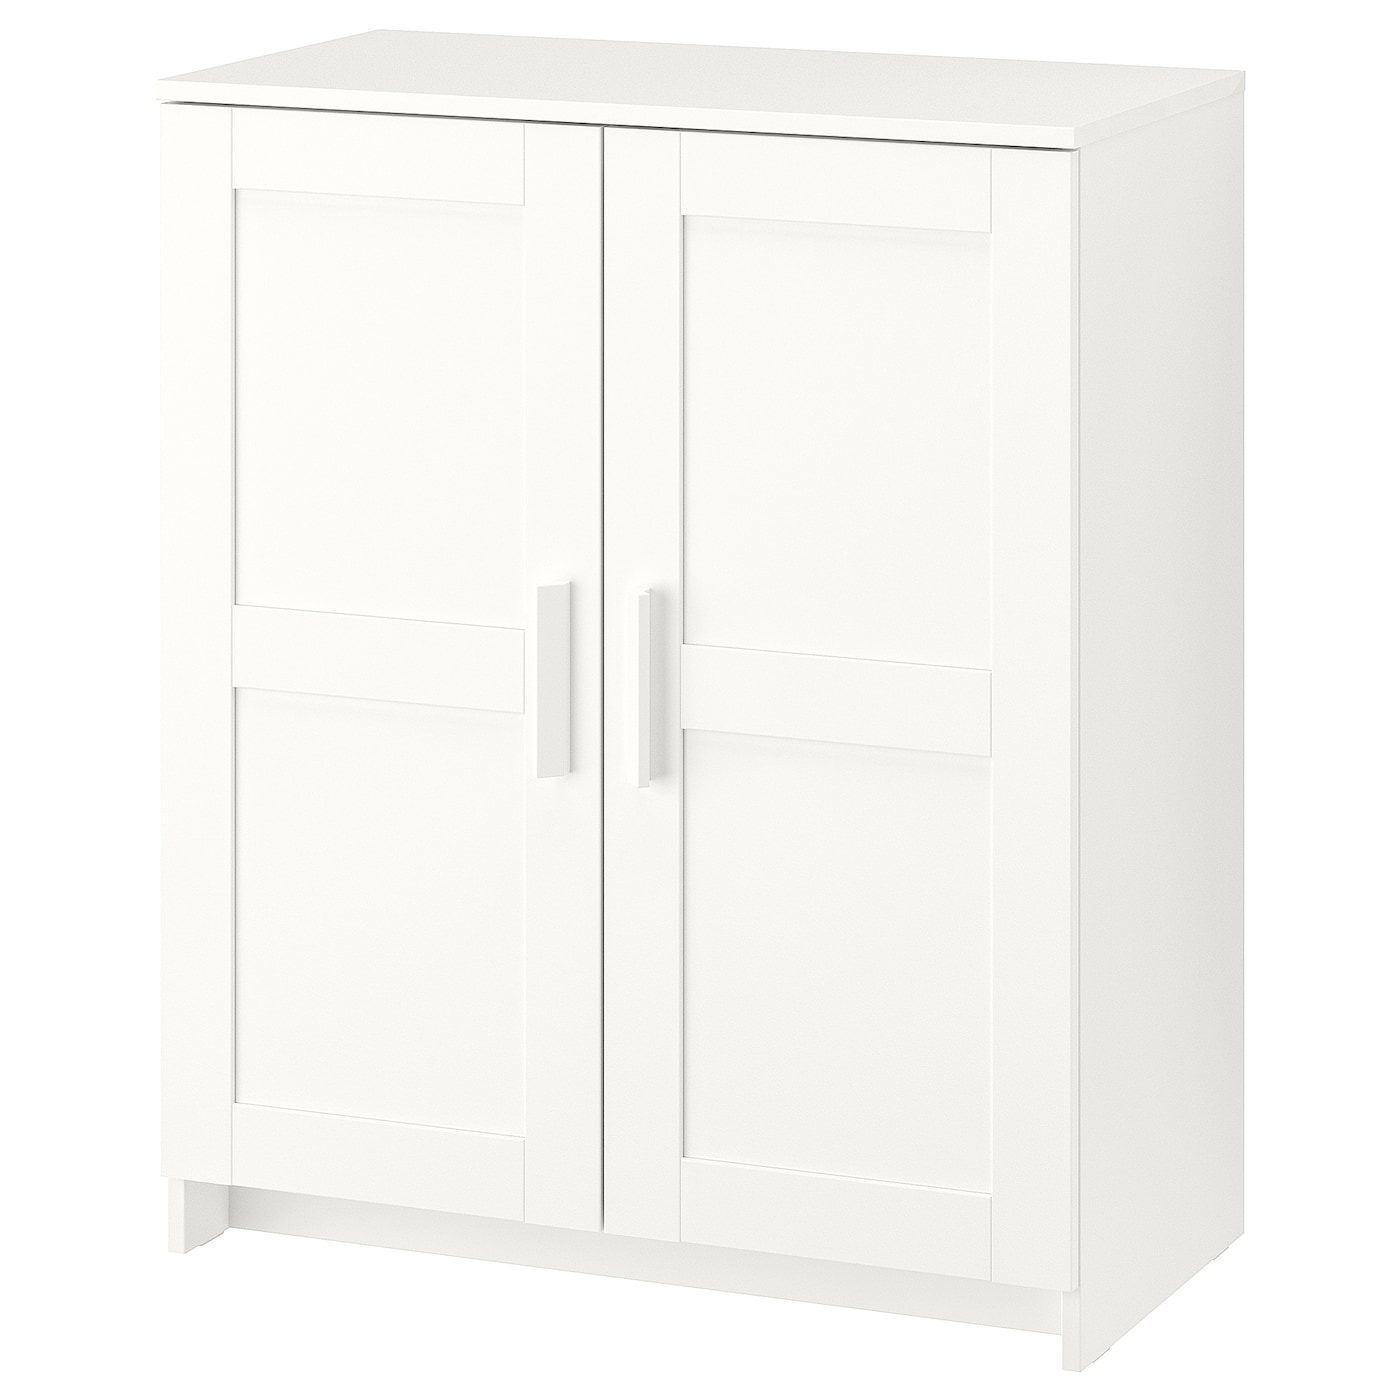 brimnes cabinet with doors white 78 x 95 cm ikea. Black Bedroom Furniture Sets. Home Design Ideas